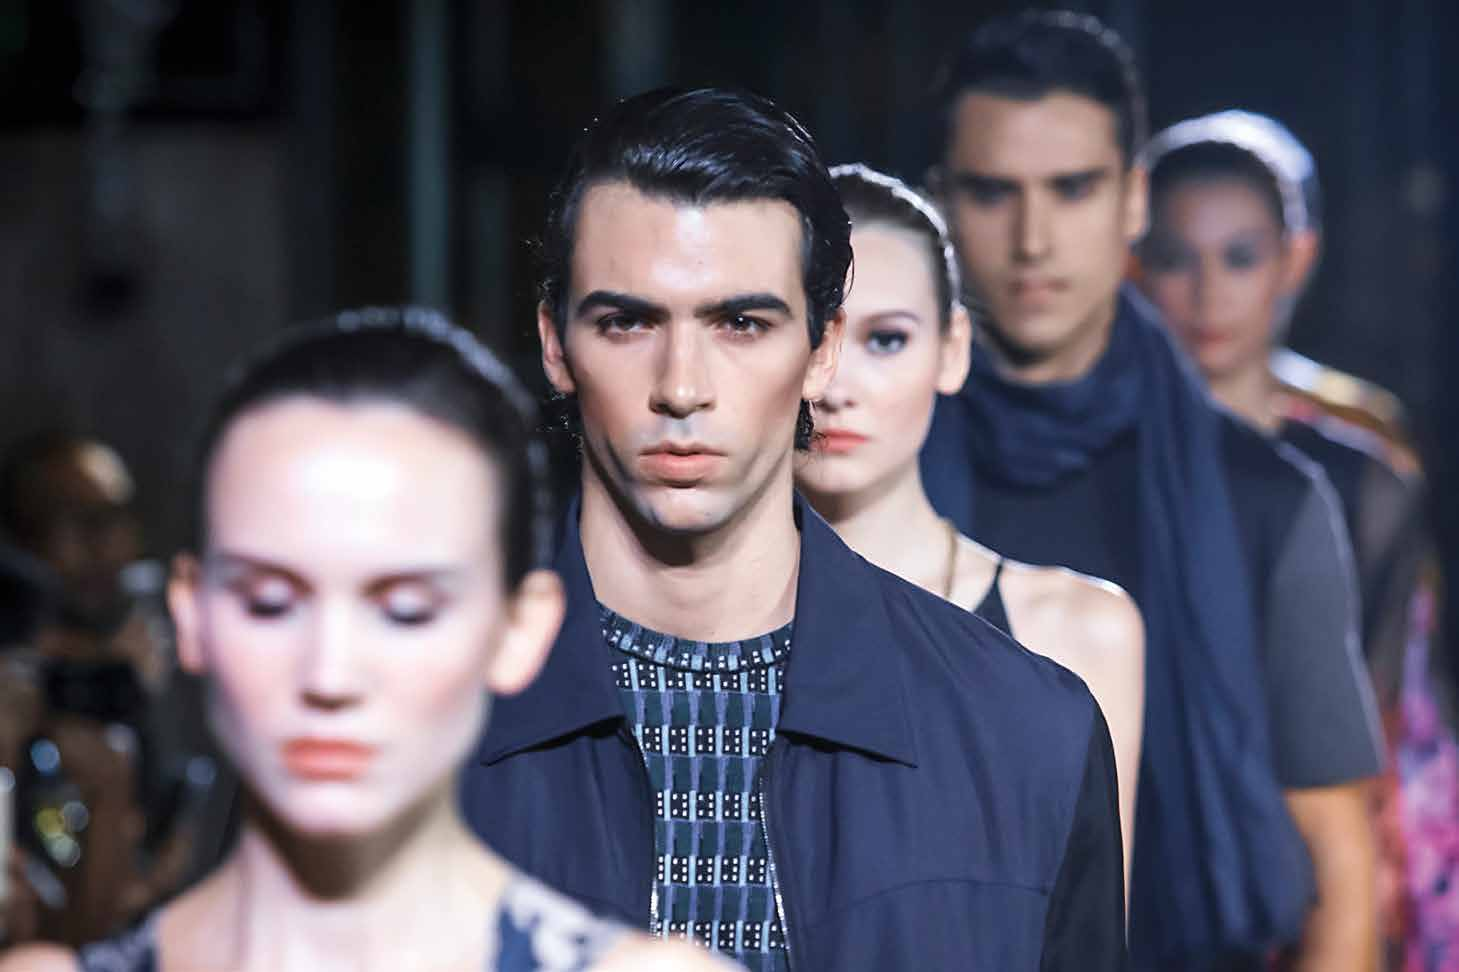 Lanvin Models on The Catwalk